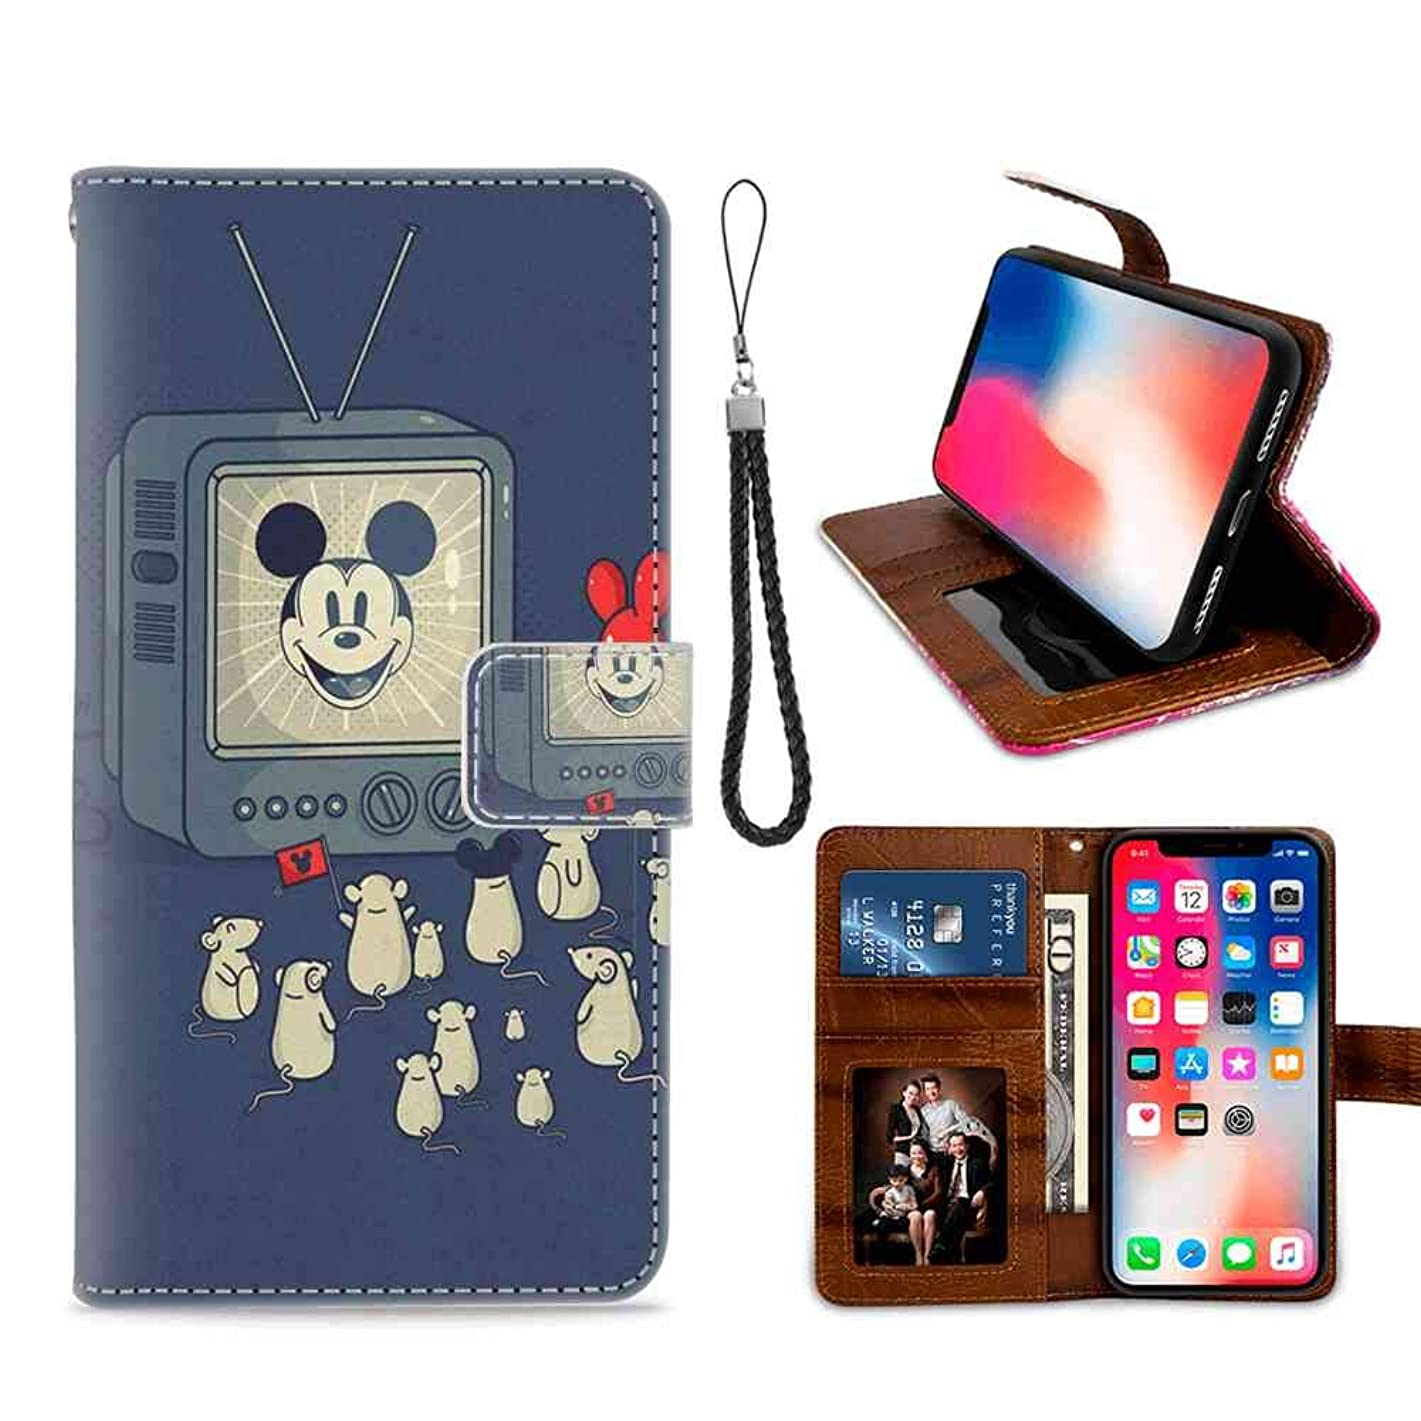 DISNEY COLLECTION Phone Wallet Case Fit Apple iPhone Xs and 10 and X The mice are Watching Mickey Mouse on TV Folio